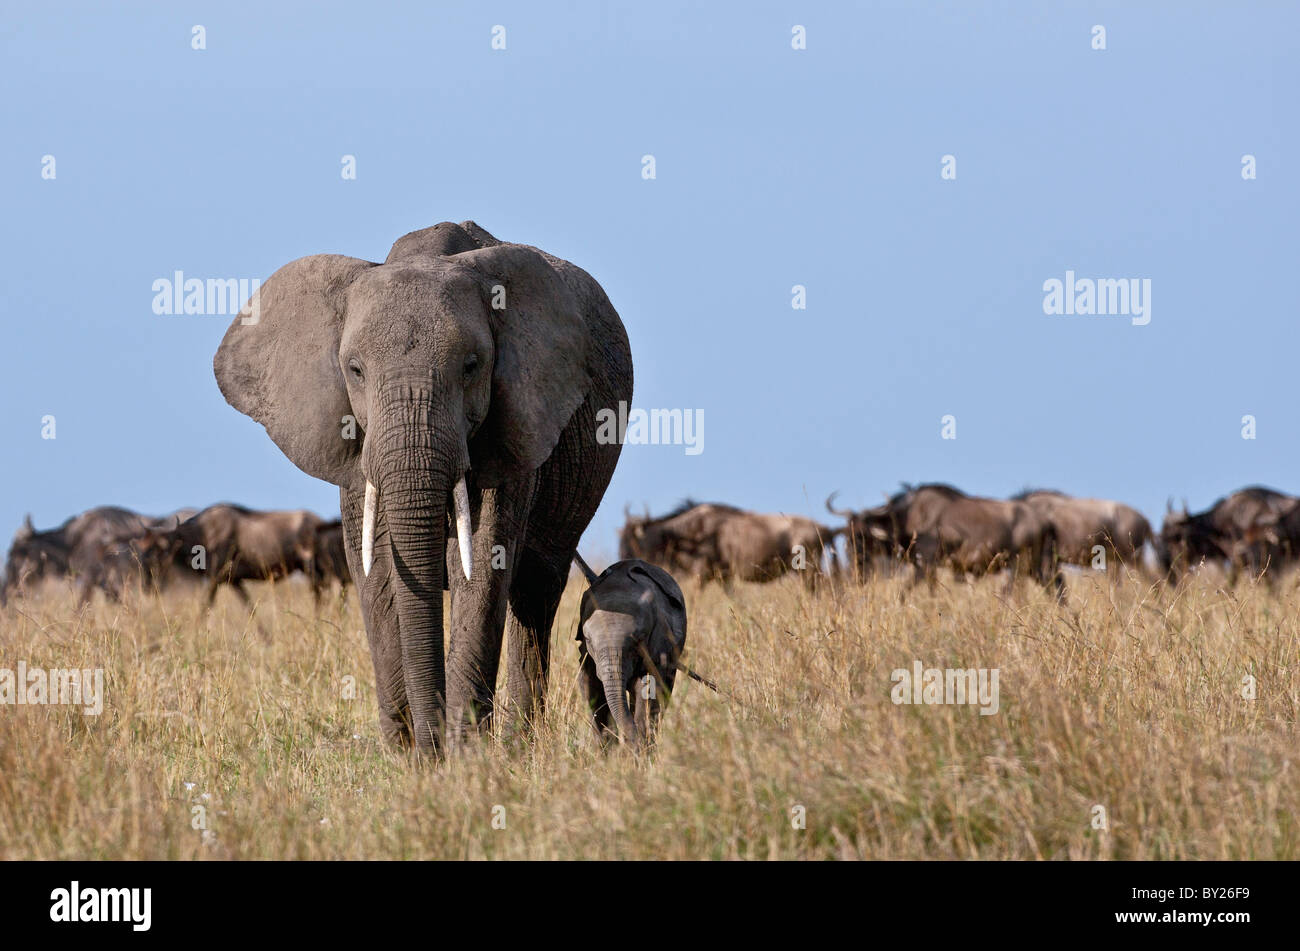 An elephant and her very small calf with a herd of wildebeest in the background. - Stock Image